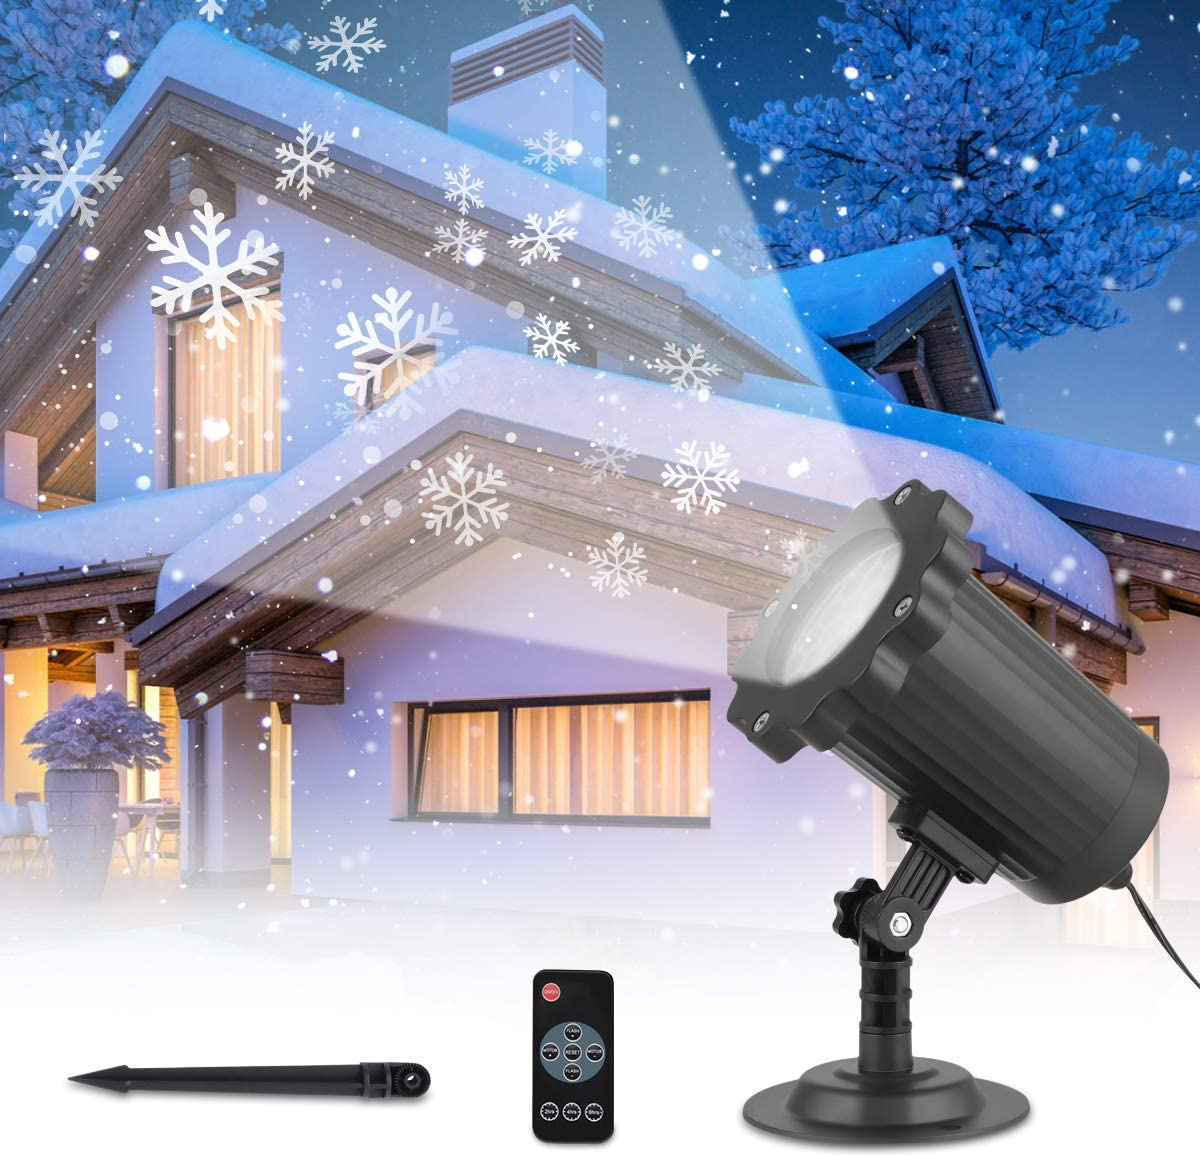 Snowflake Projector Light Outdoor Remote with Control Reservation Lowest price challenge Wireless